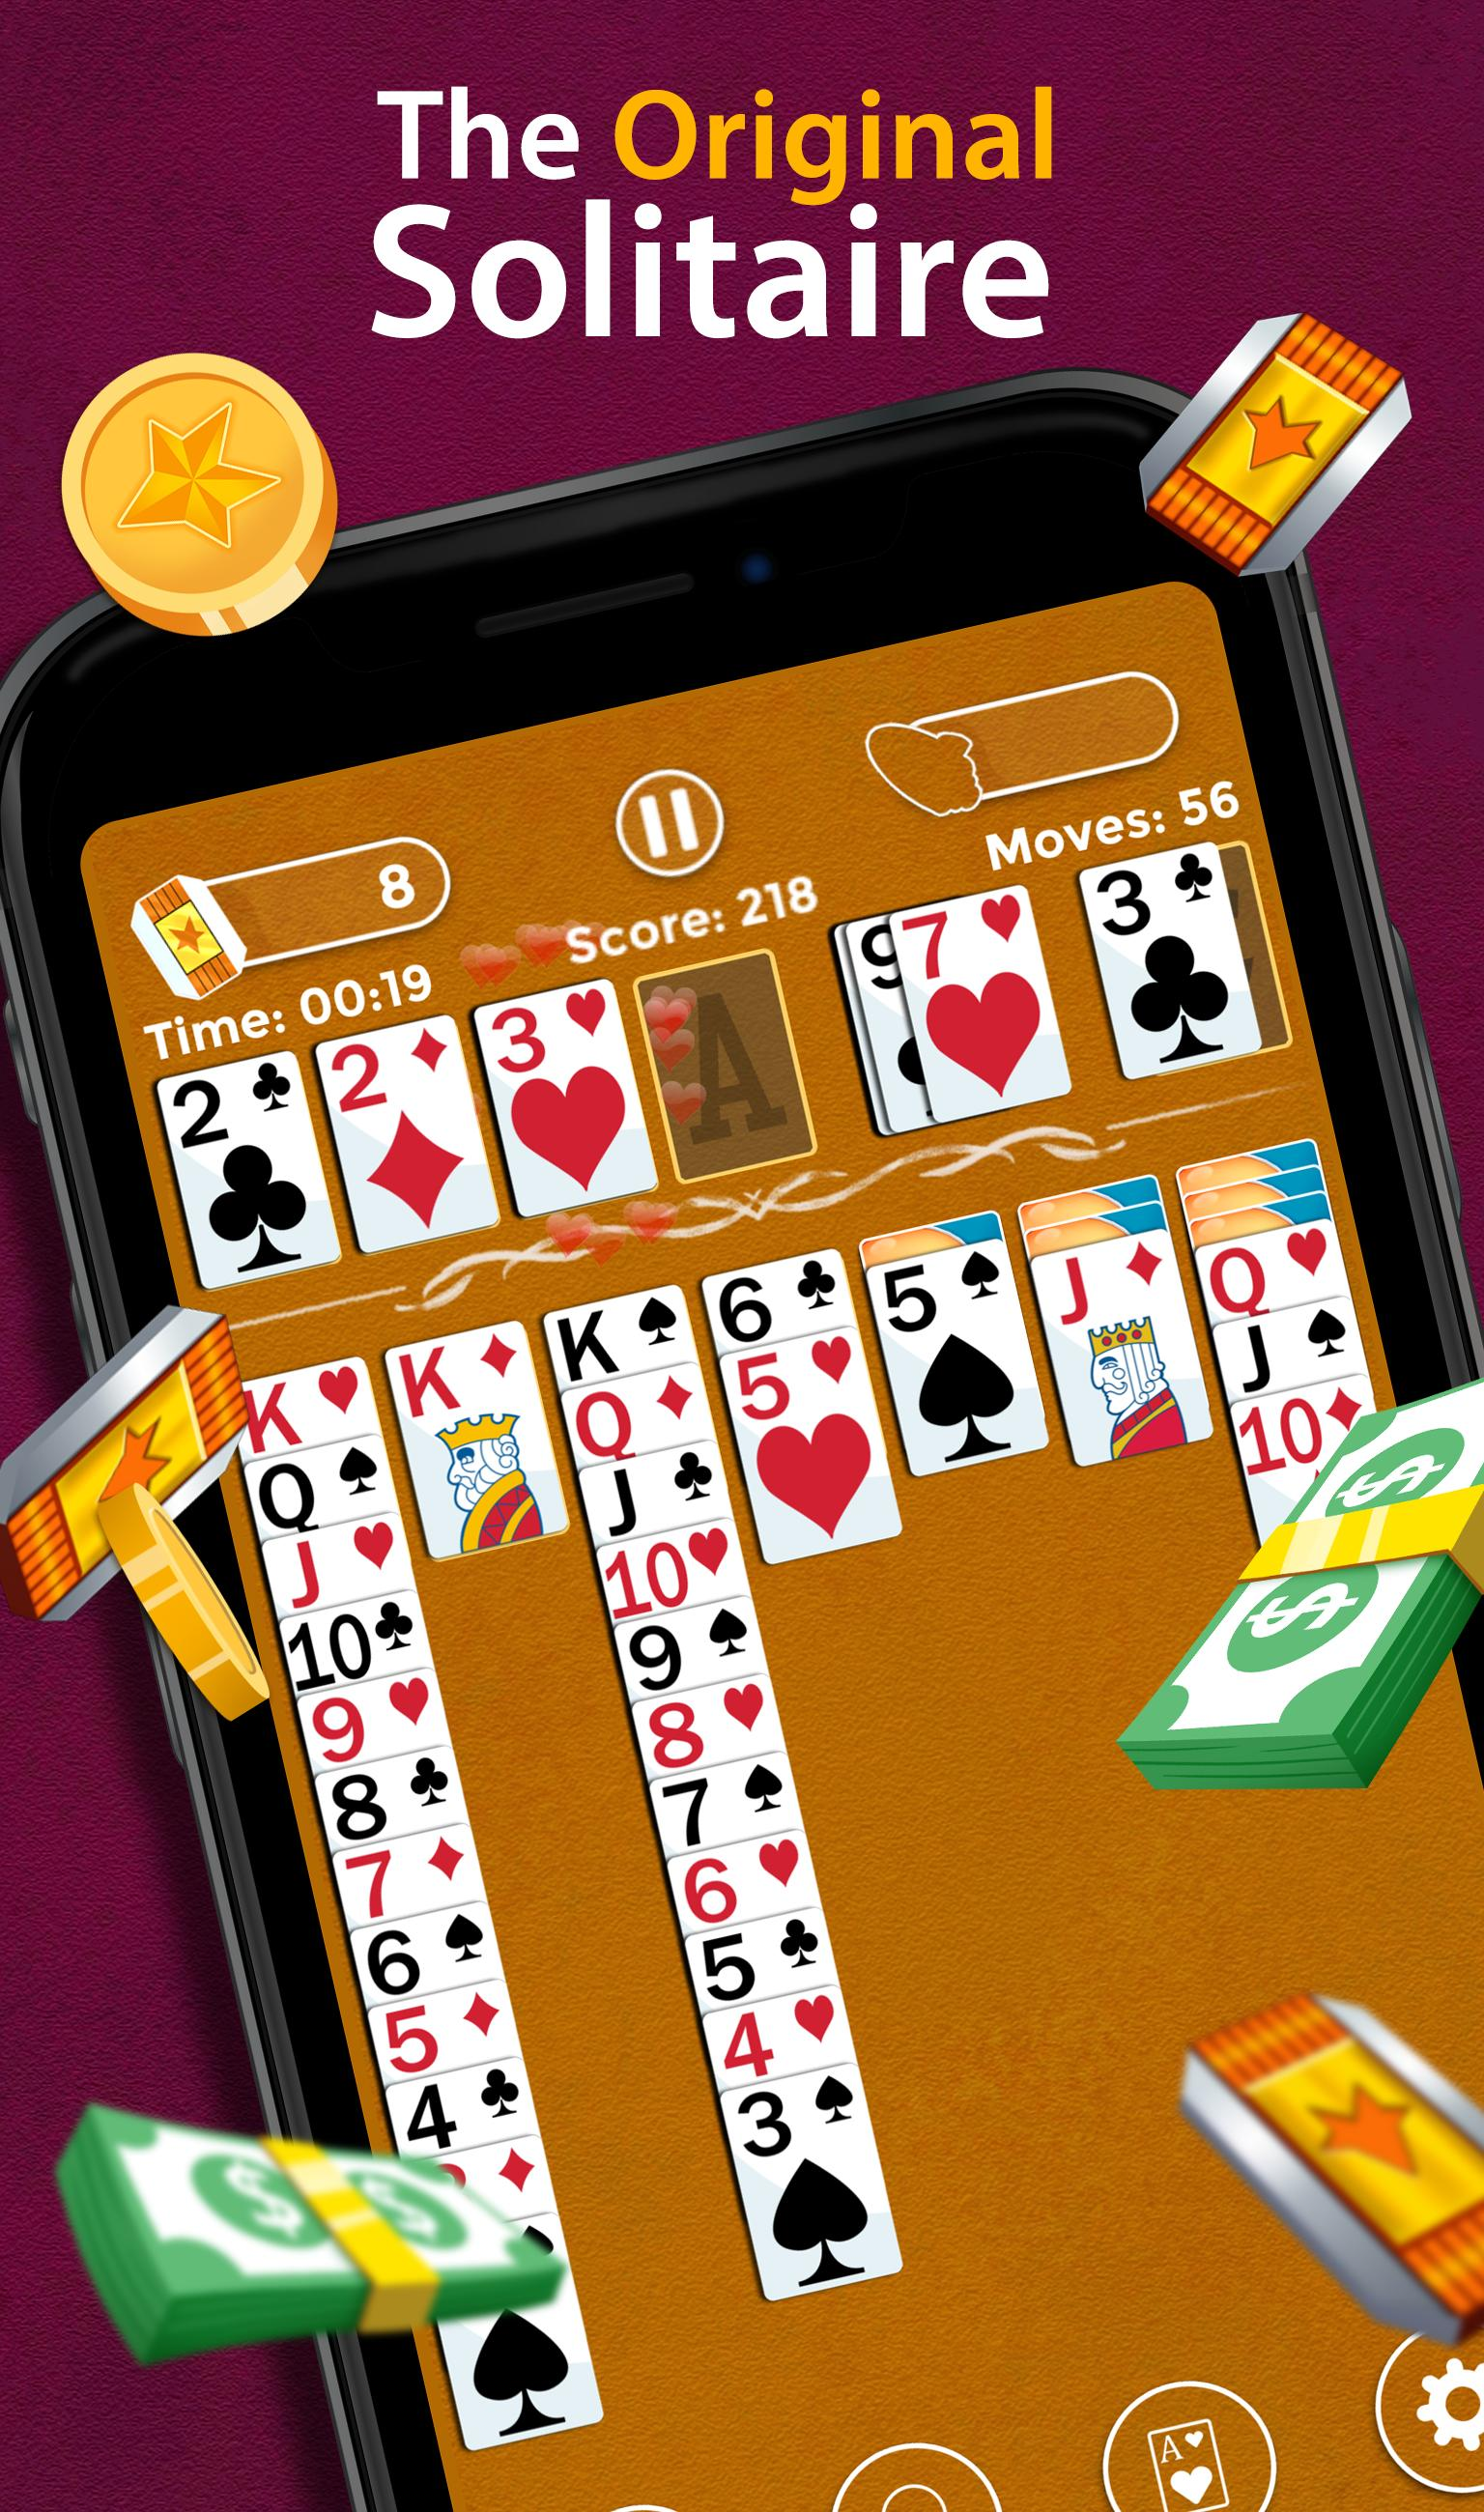 Solitaire Make Free Money and Play the Card Game 1.8.5 Screenshot 6